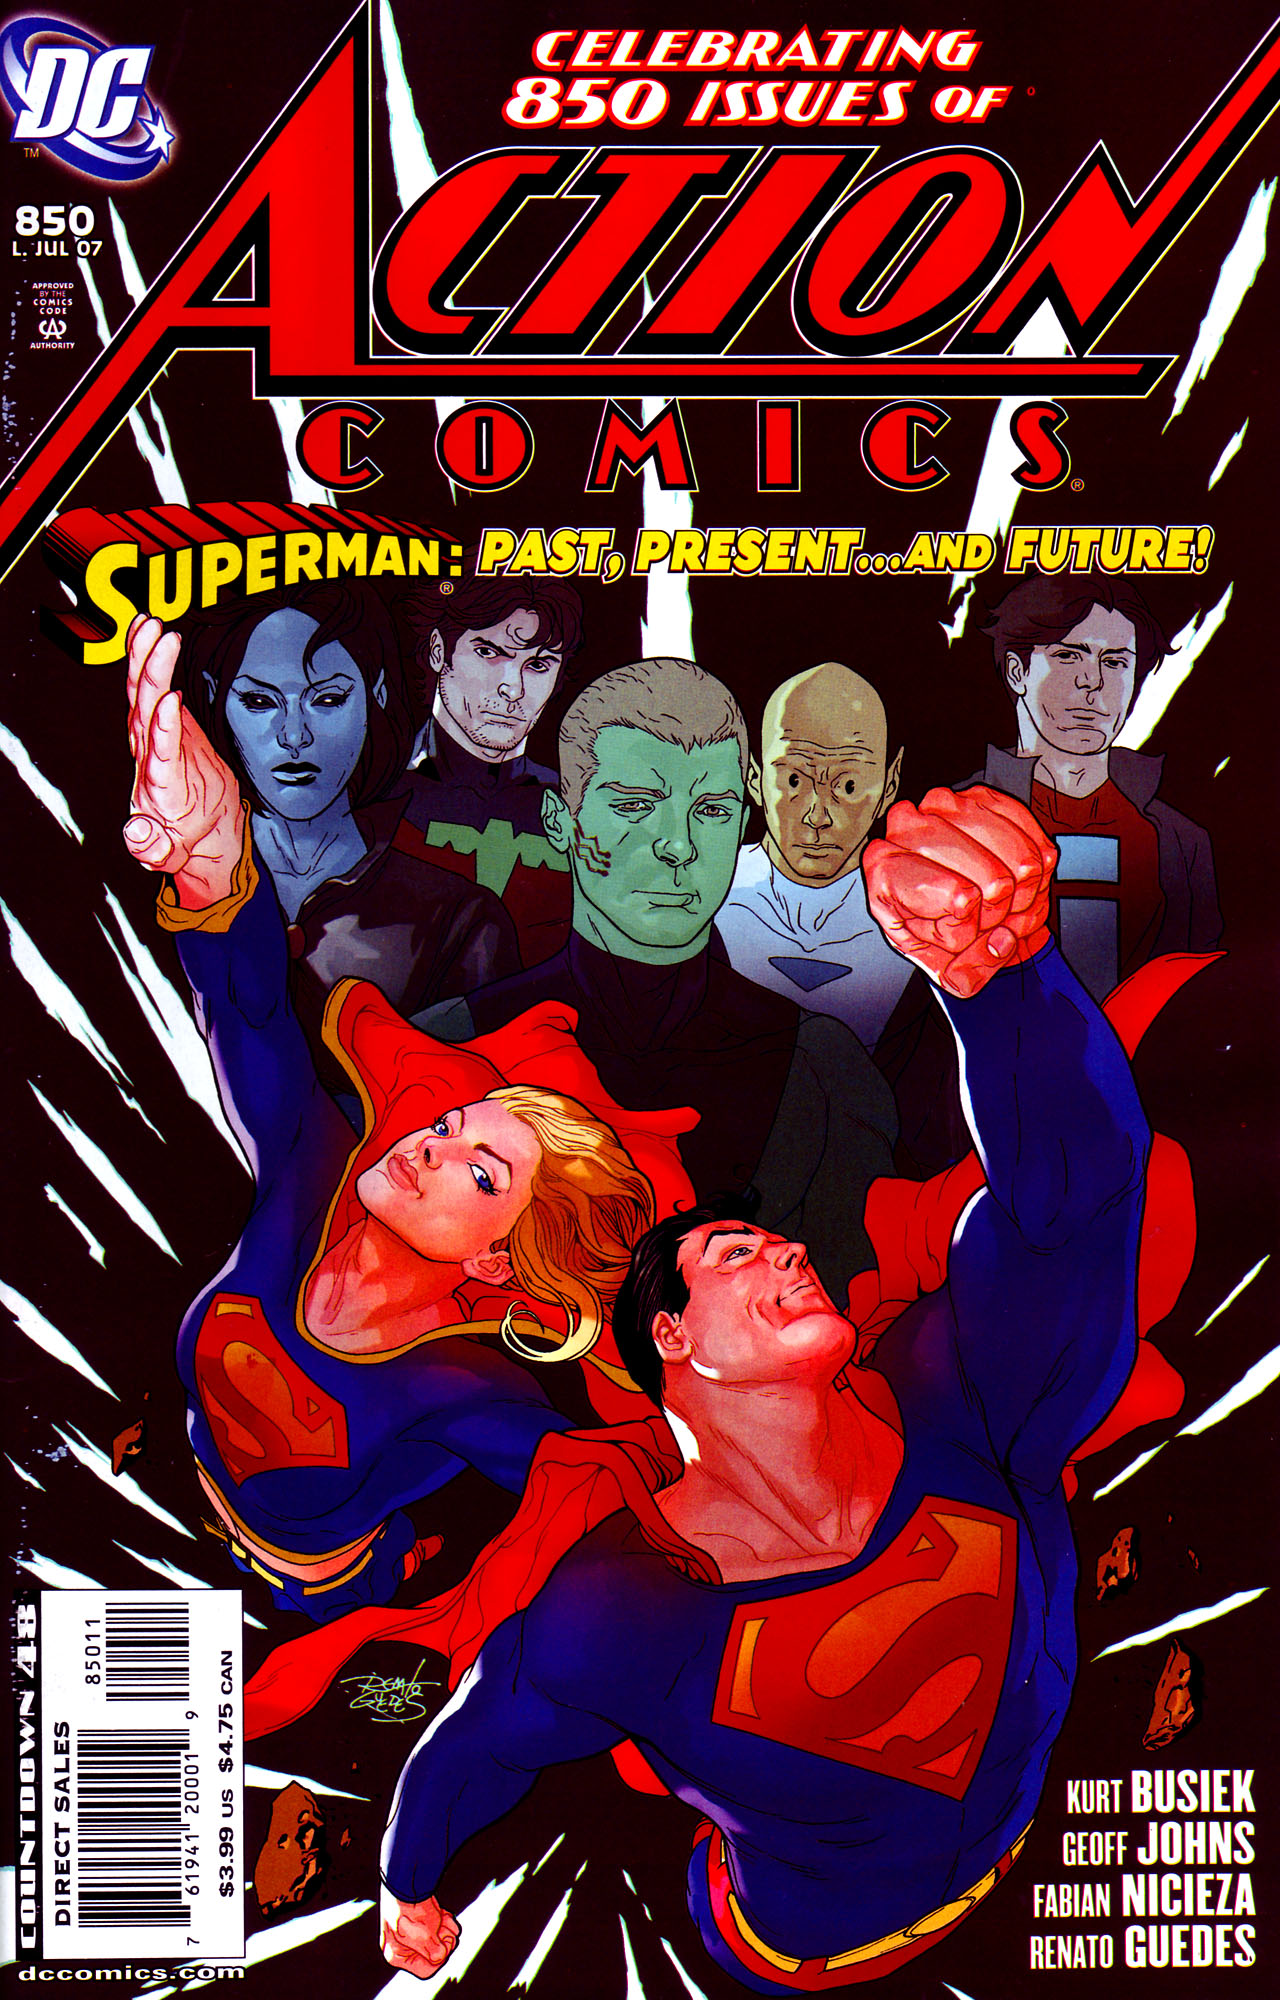 Read online Action Comics (1938) comic -  Issue #850 - 1